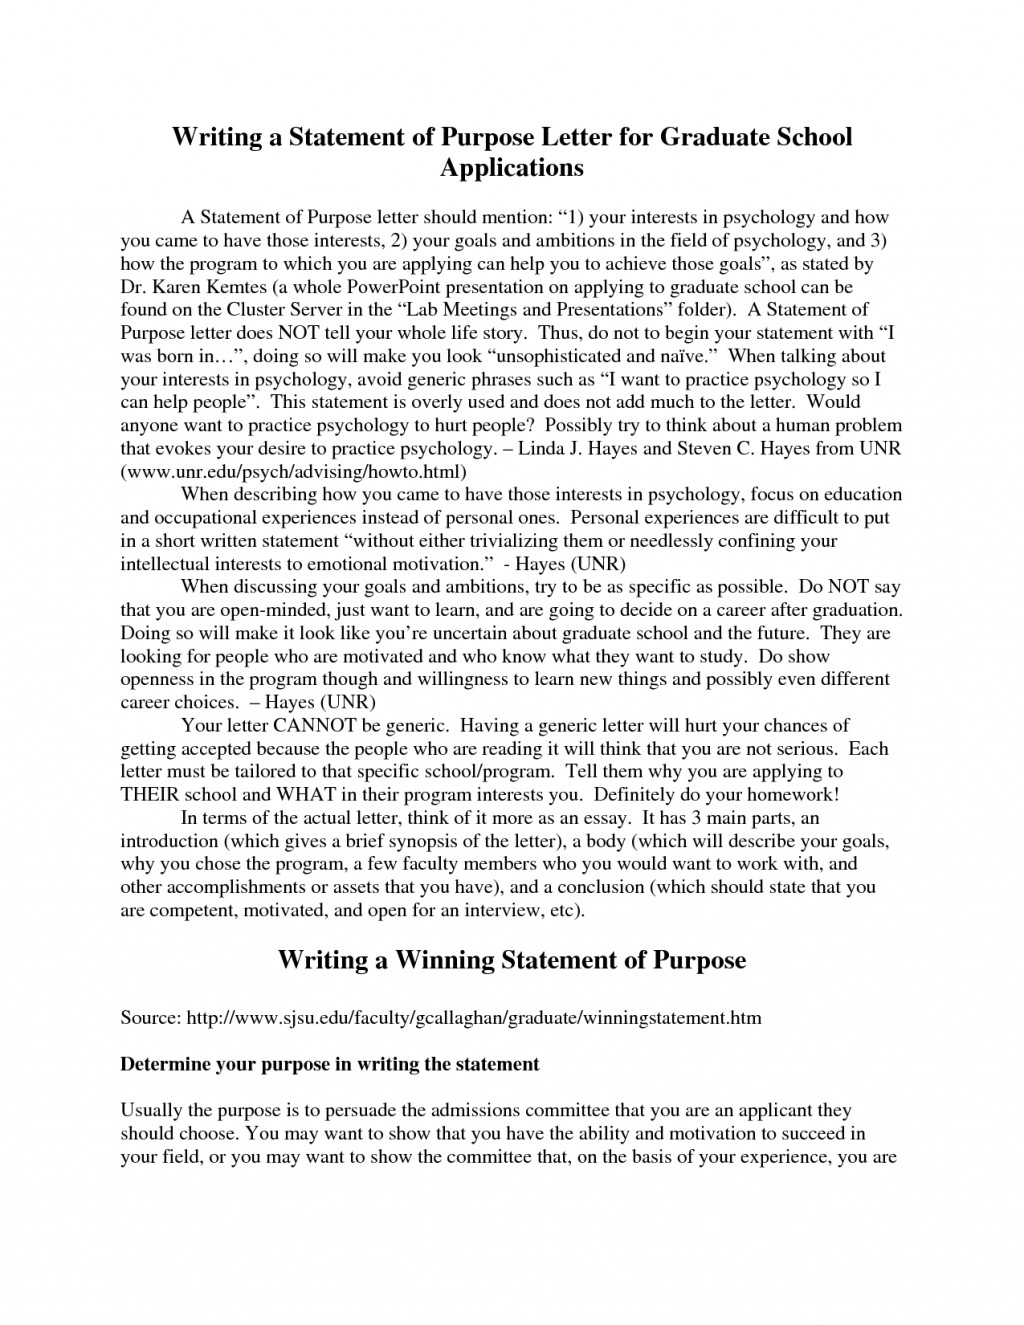 009 Statement Of Purpose Graduate School Sample Essays Personal Essay Examples High College Application Engineering Grad Template Zap Example Speech Pathology Social Top Education Large